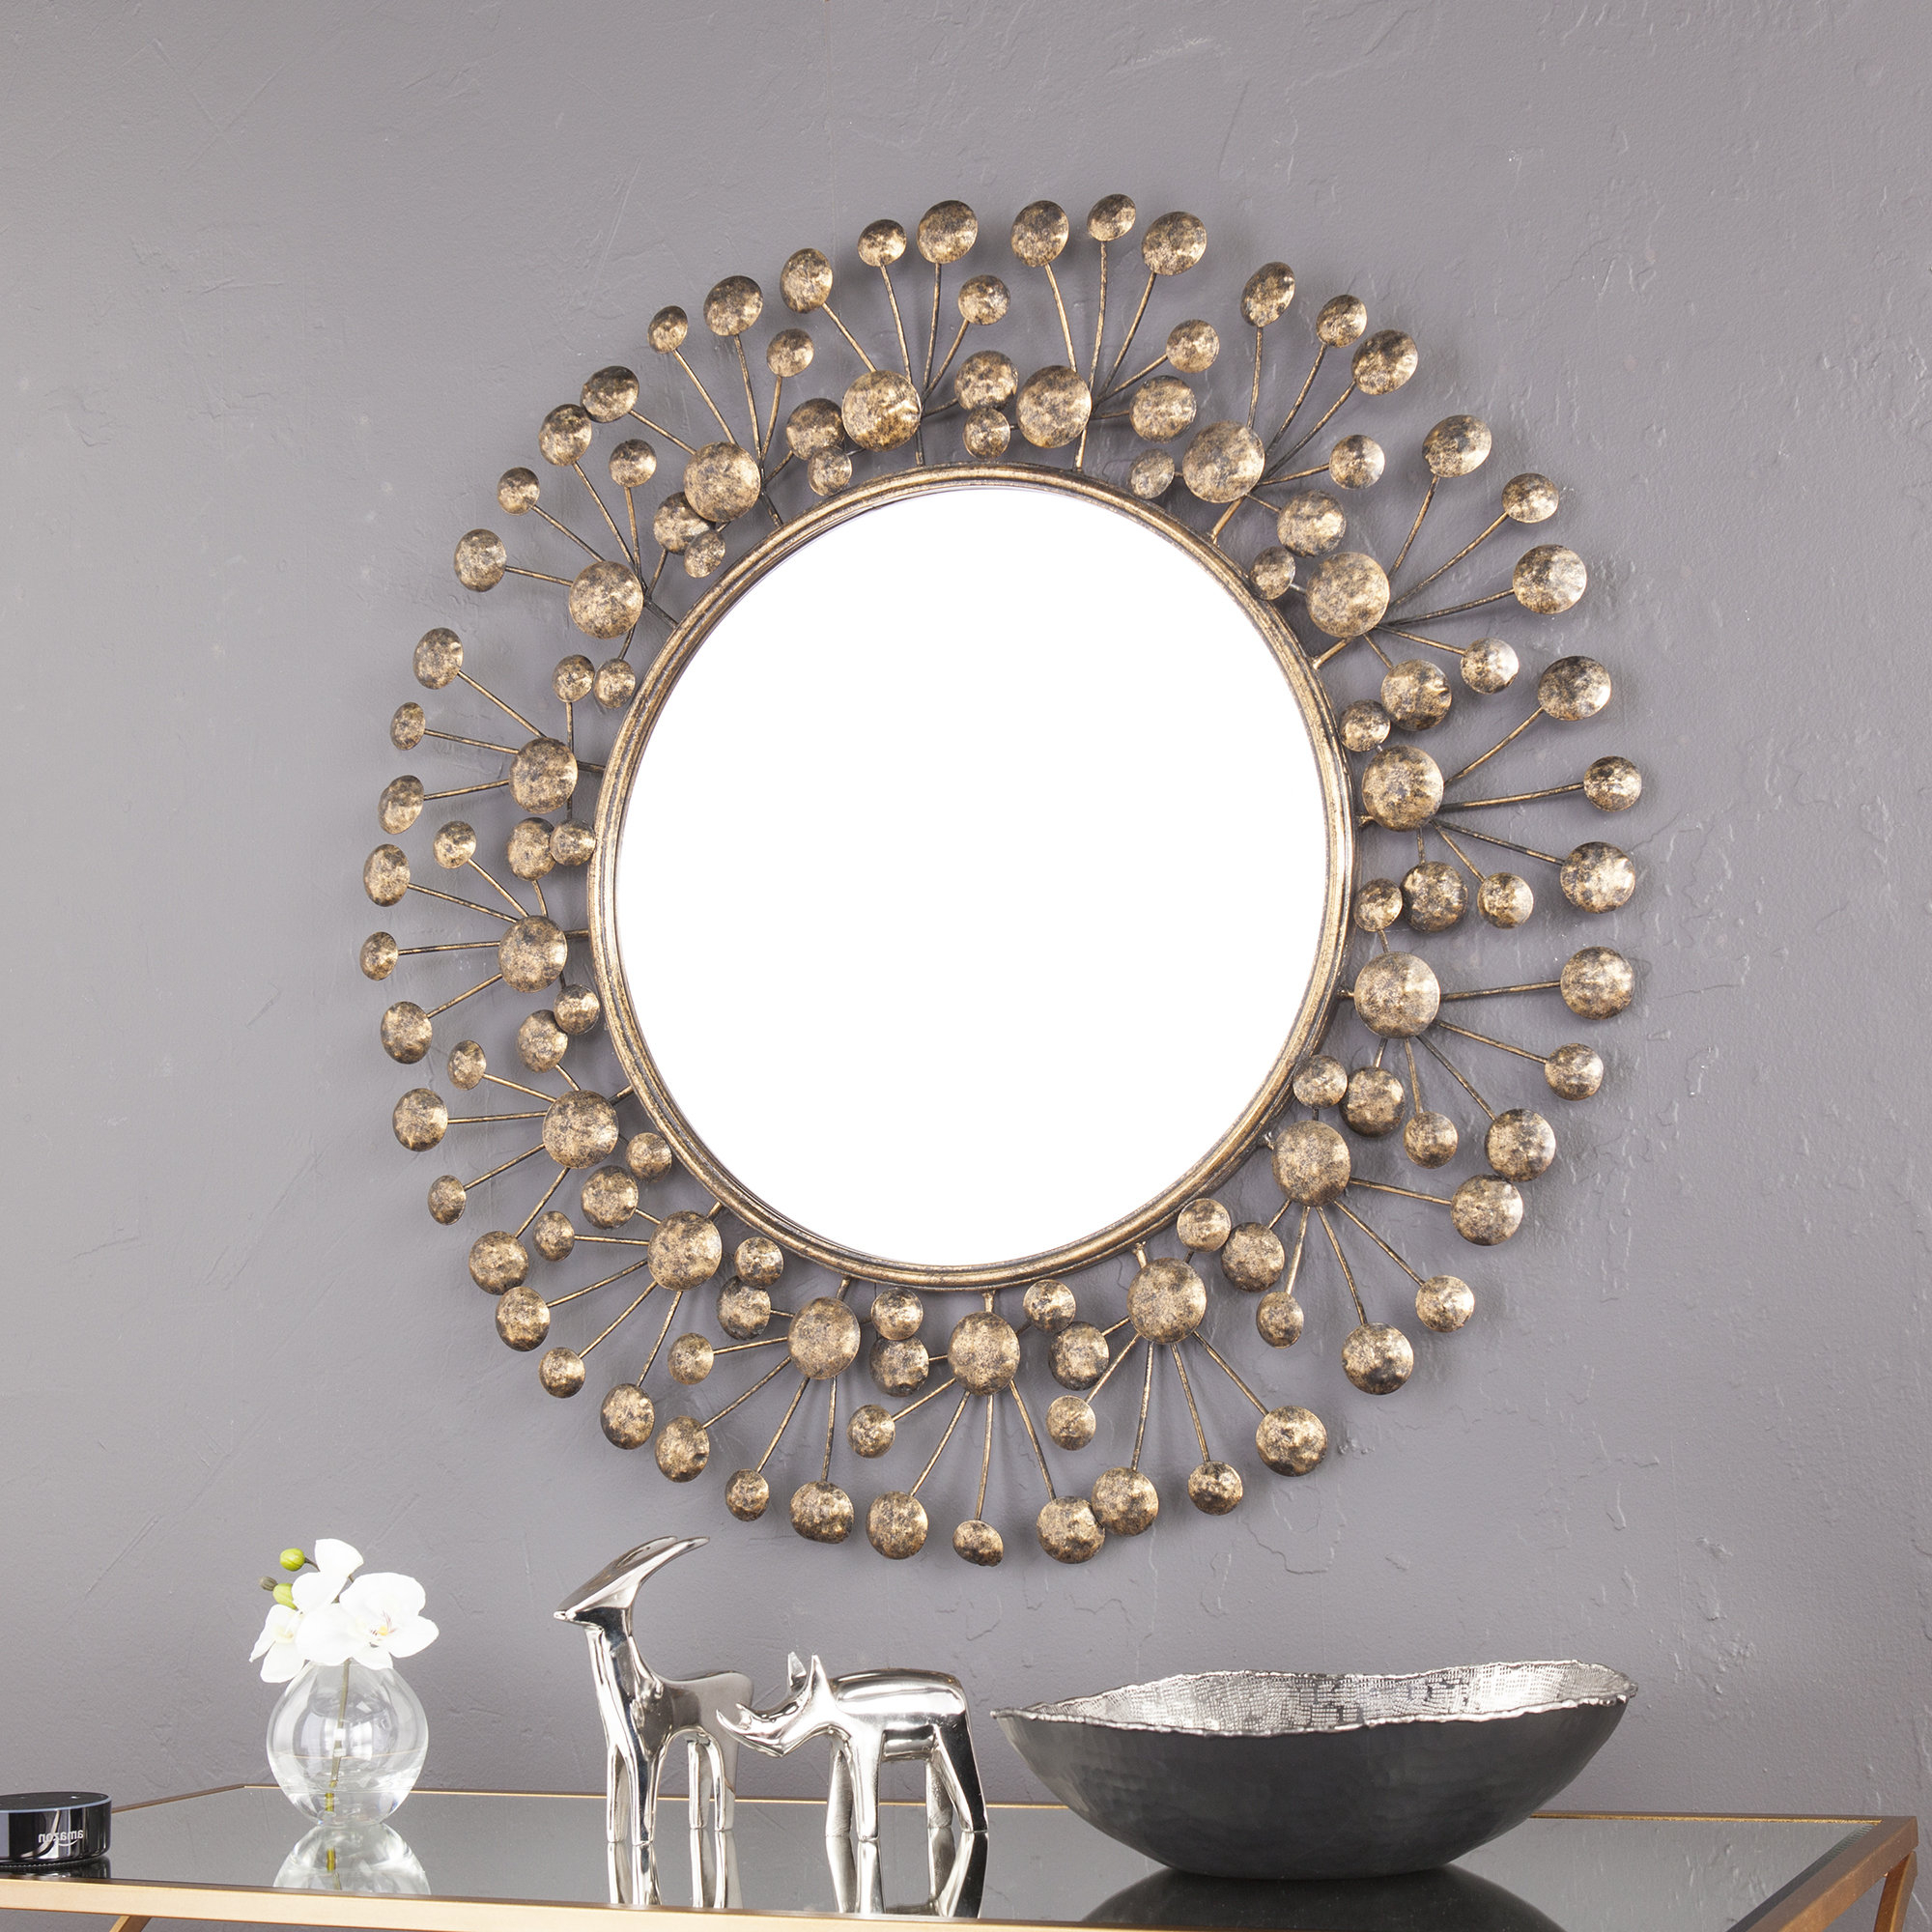 Decorative Round Wall Mirrors Pertaining To Fashionable Details About Brayden Studio Eisenbarth Oversized Decorative Round Wall  Mirror (View 2 of 20)